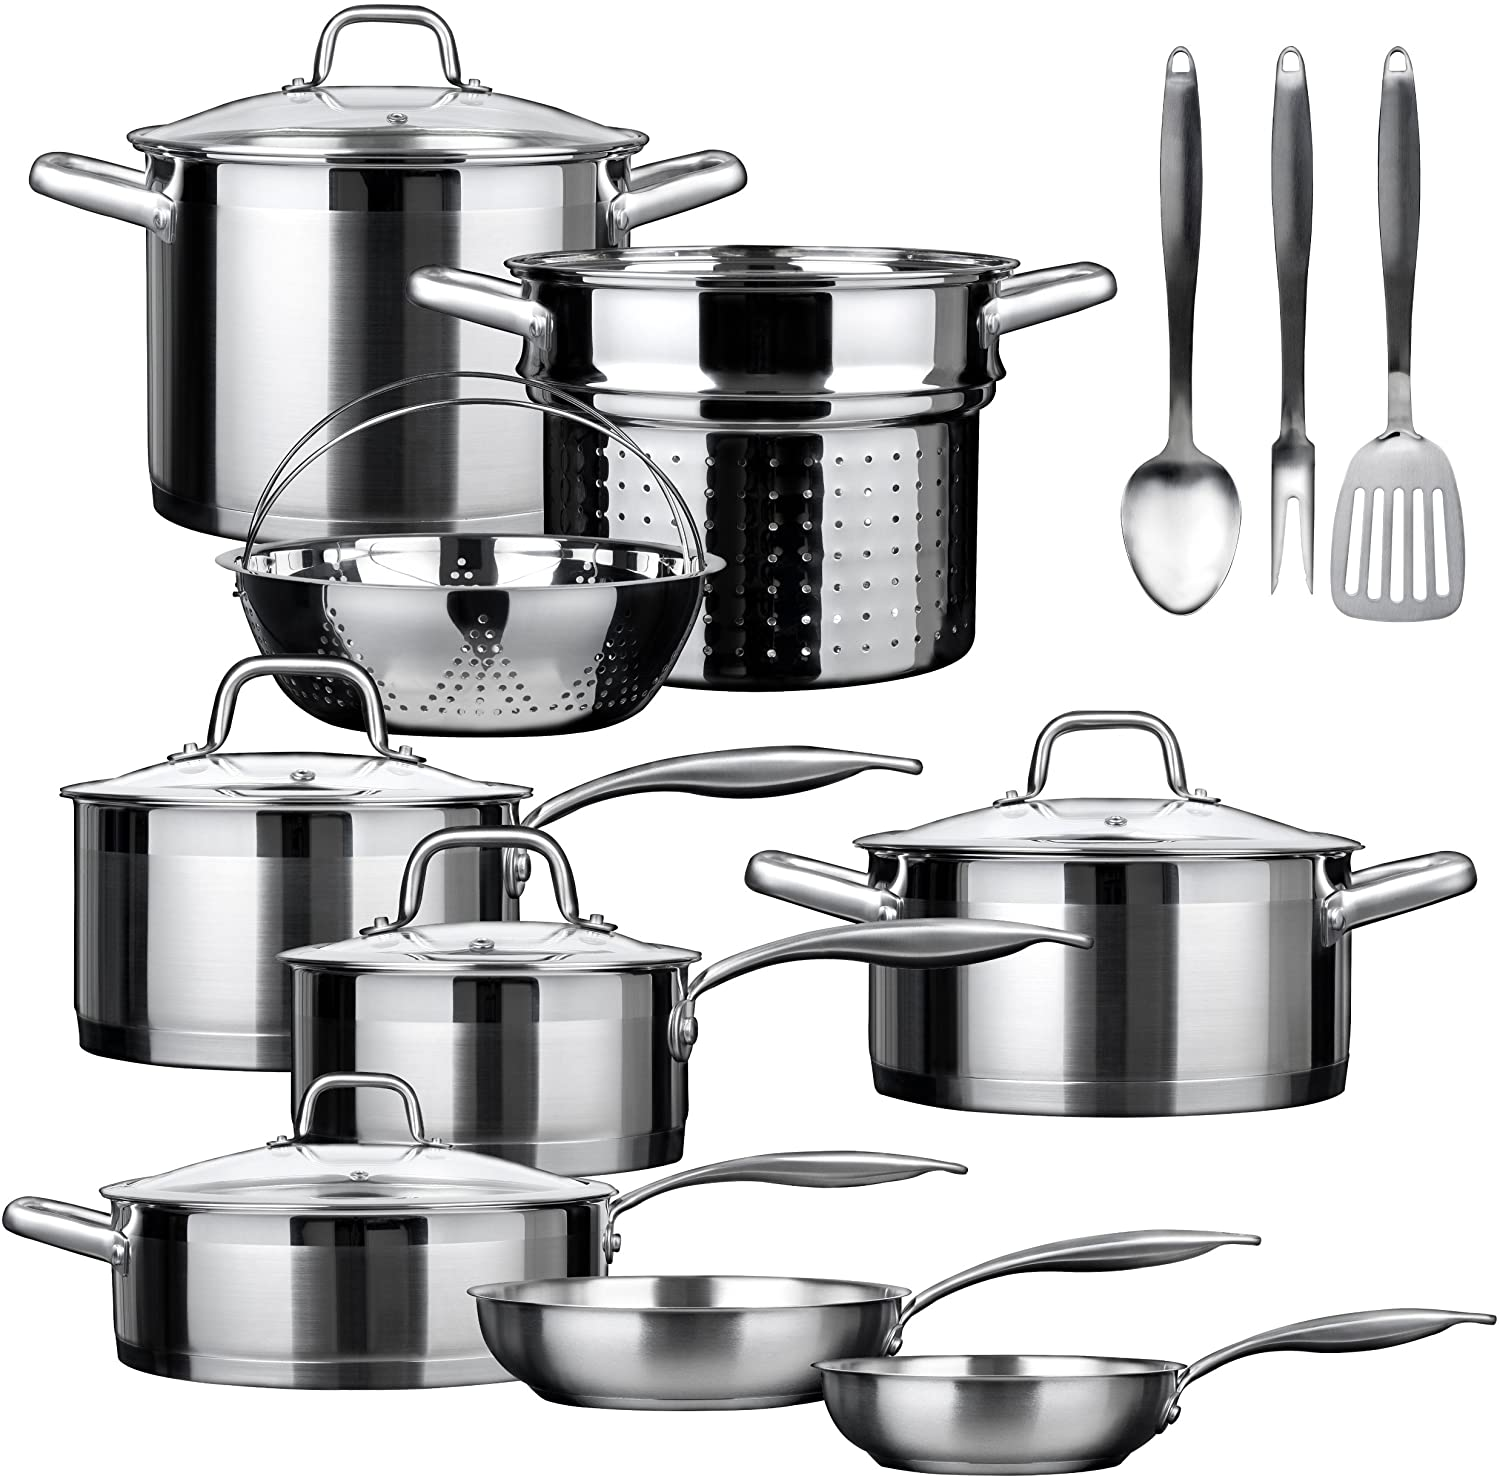 Duxtop SSIB-17 Professional 17 Pieces Stainless Steel Induction Cookware Set, Impact-bonded Technology